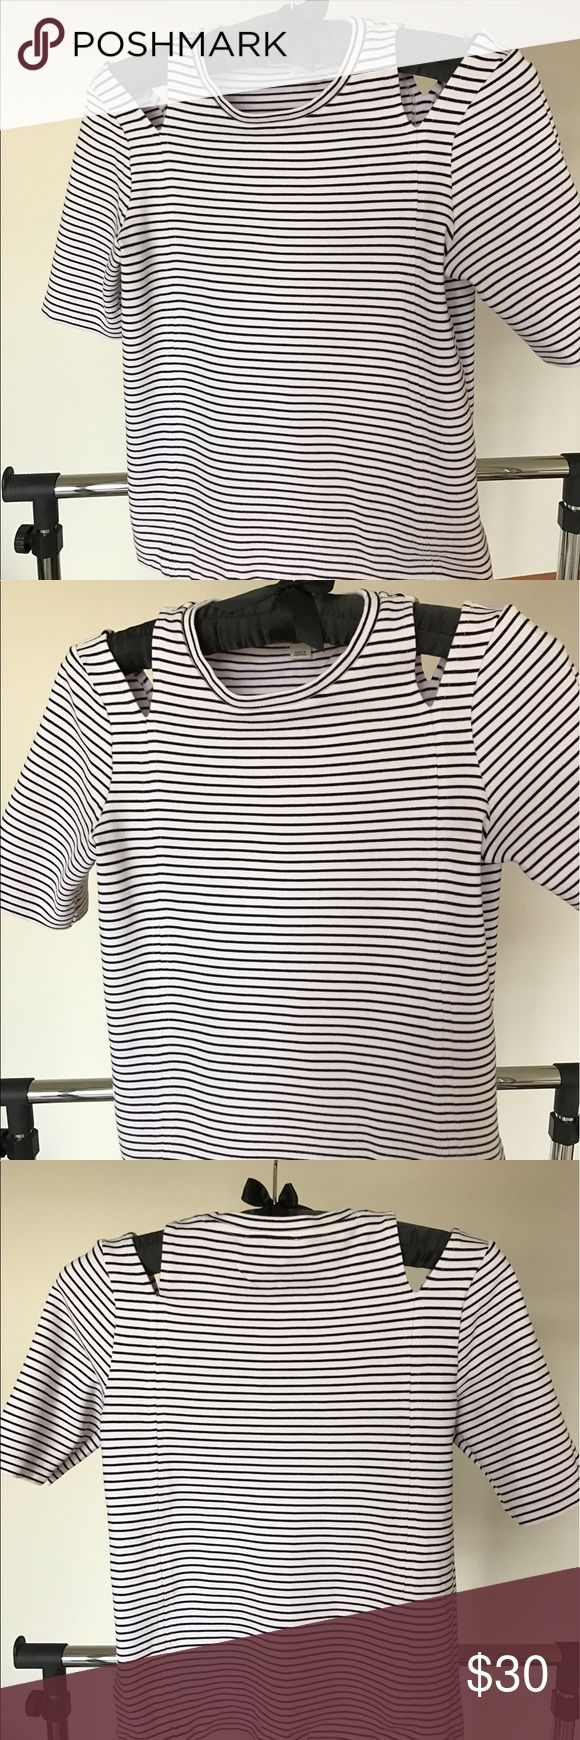 Whistles t-shirt. British luxury brand. Excellent t-shirt, warn one time. Whistles Tops Tees - Short Sleeve